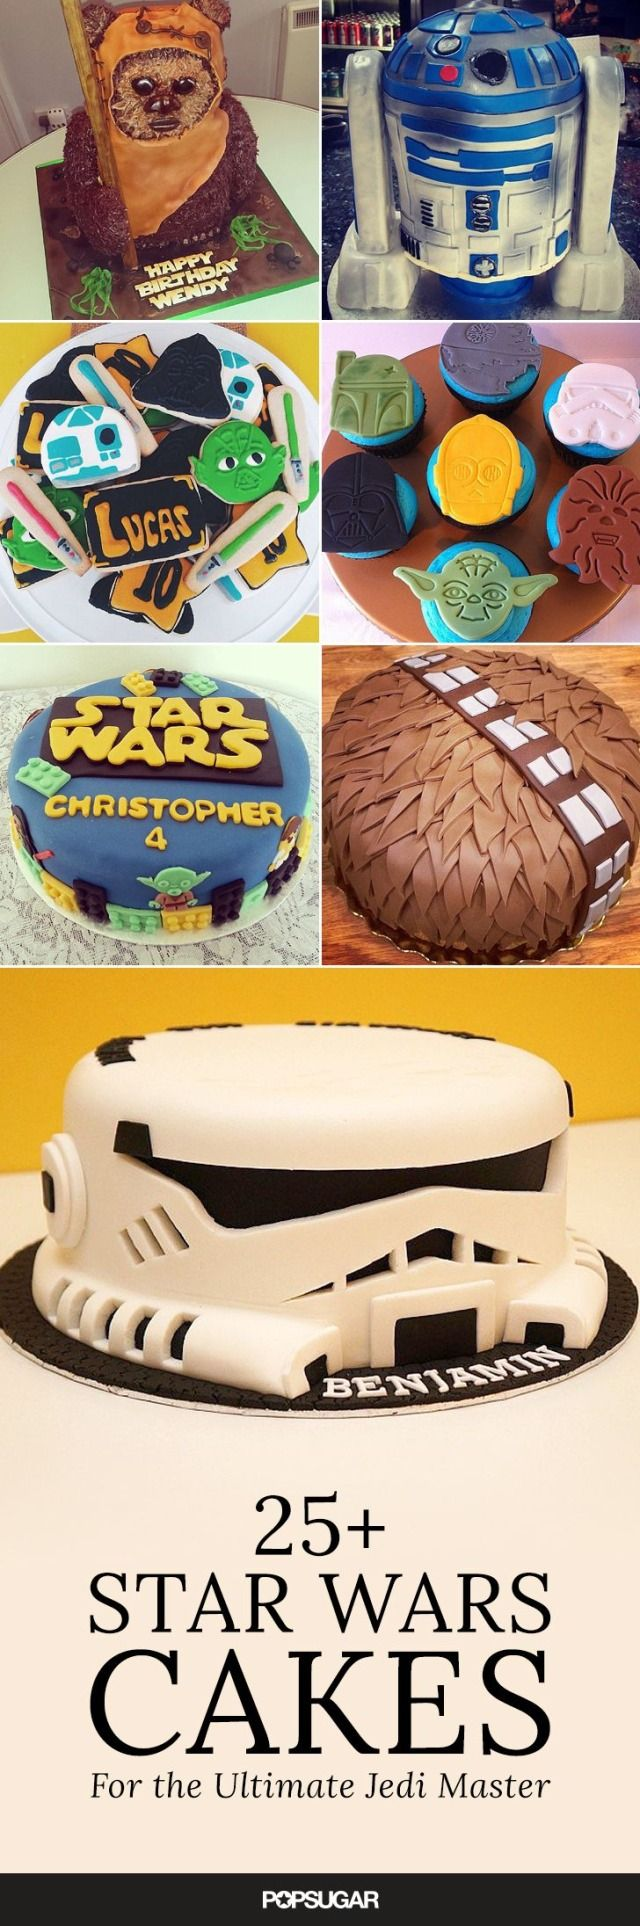 """Does your tot dream of living in a galaxy far away? Can they turn anything – even air — into a lightsaber? If you answered """"yes"""" to either of those questions, then you may want to help them celebrate their birthday with some Star Wars-inspired sweets."""